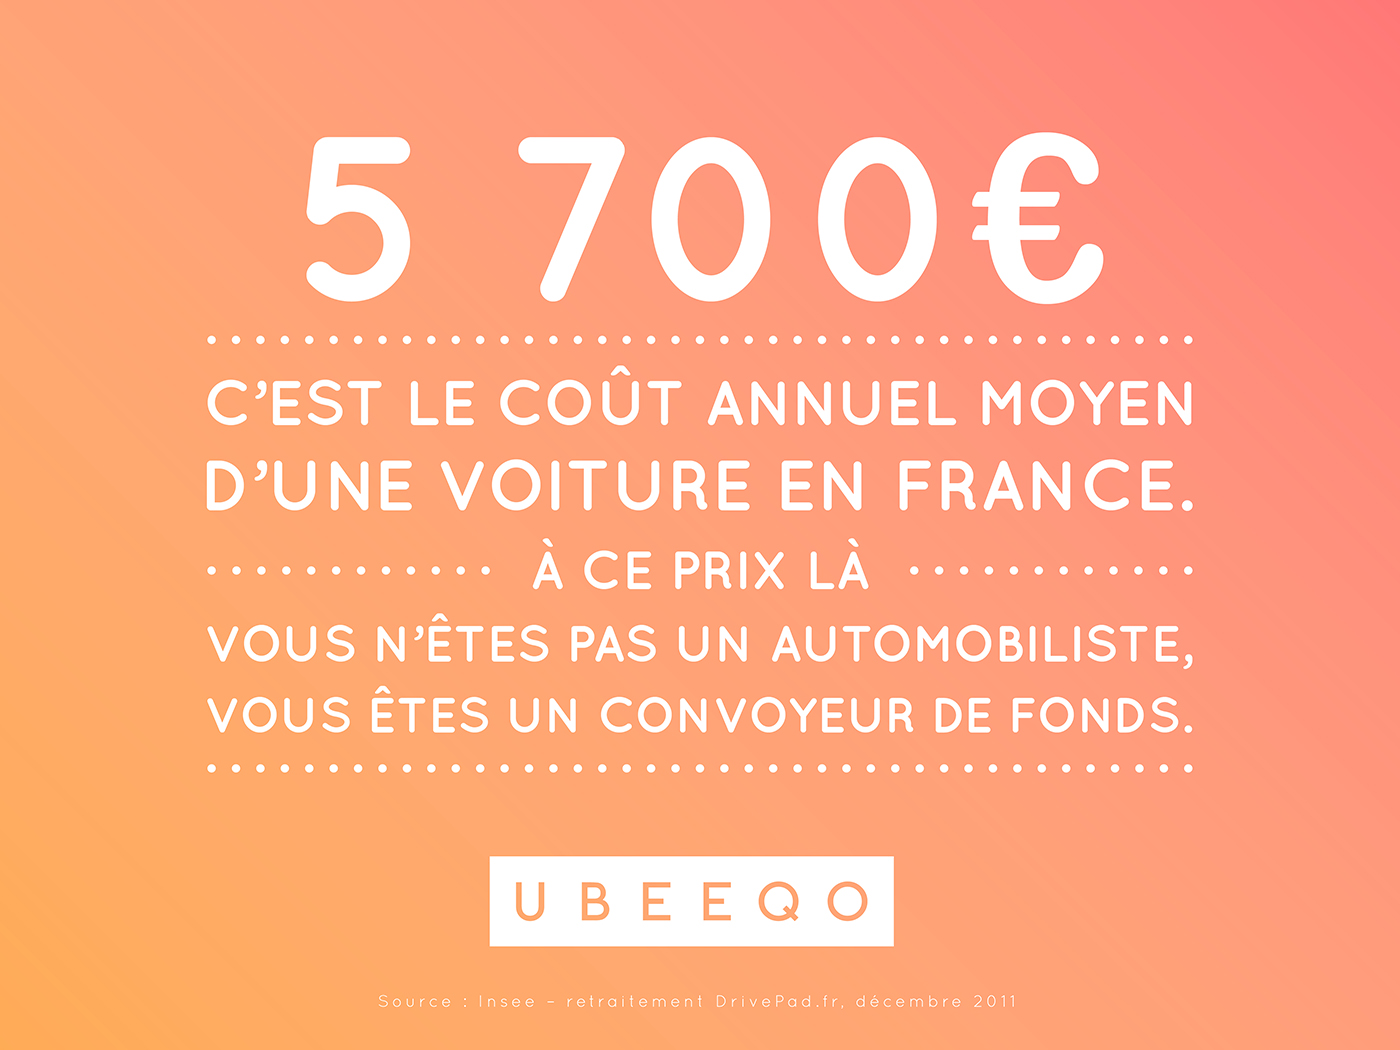 ubeeqo-application-automobile-partage-paris-chiffres-absurdes-publicite-marketing-stunt-2016-agence-clm-bbdo